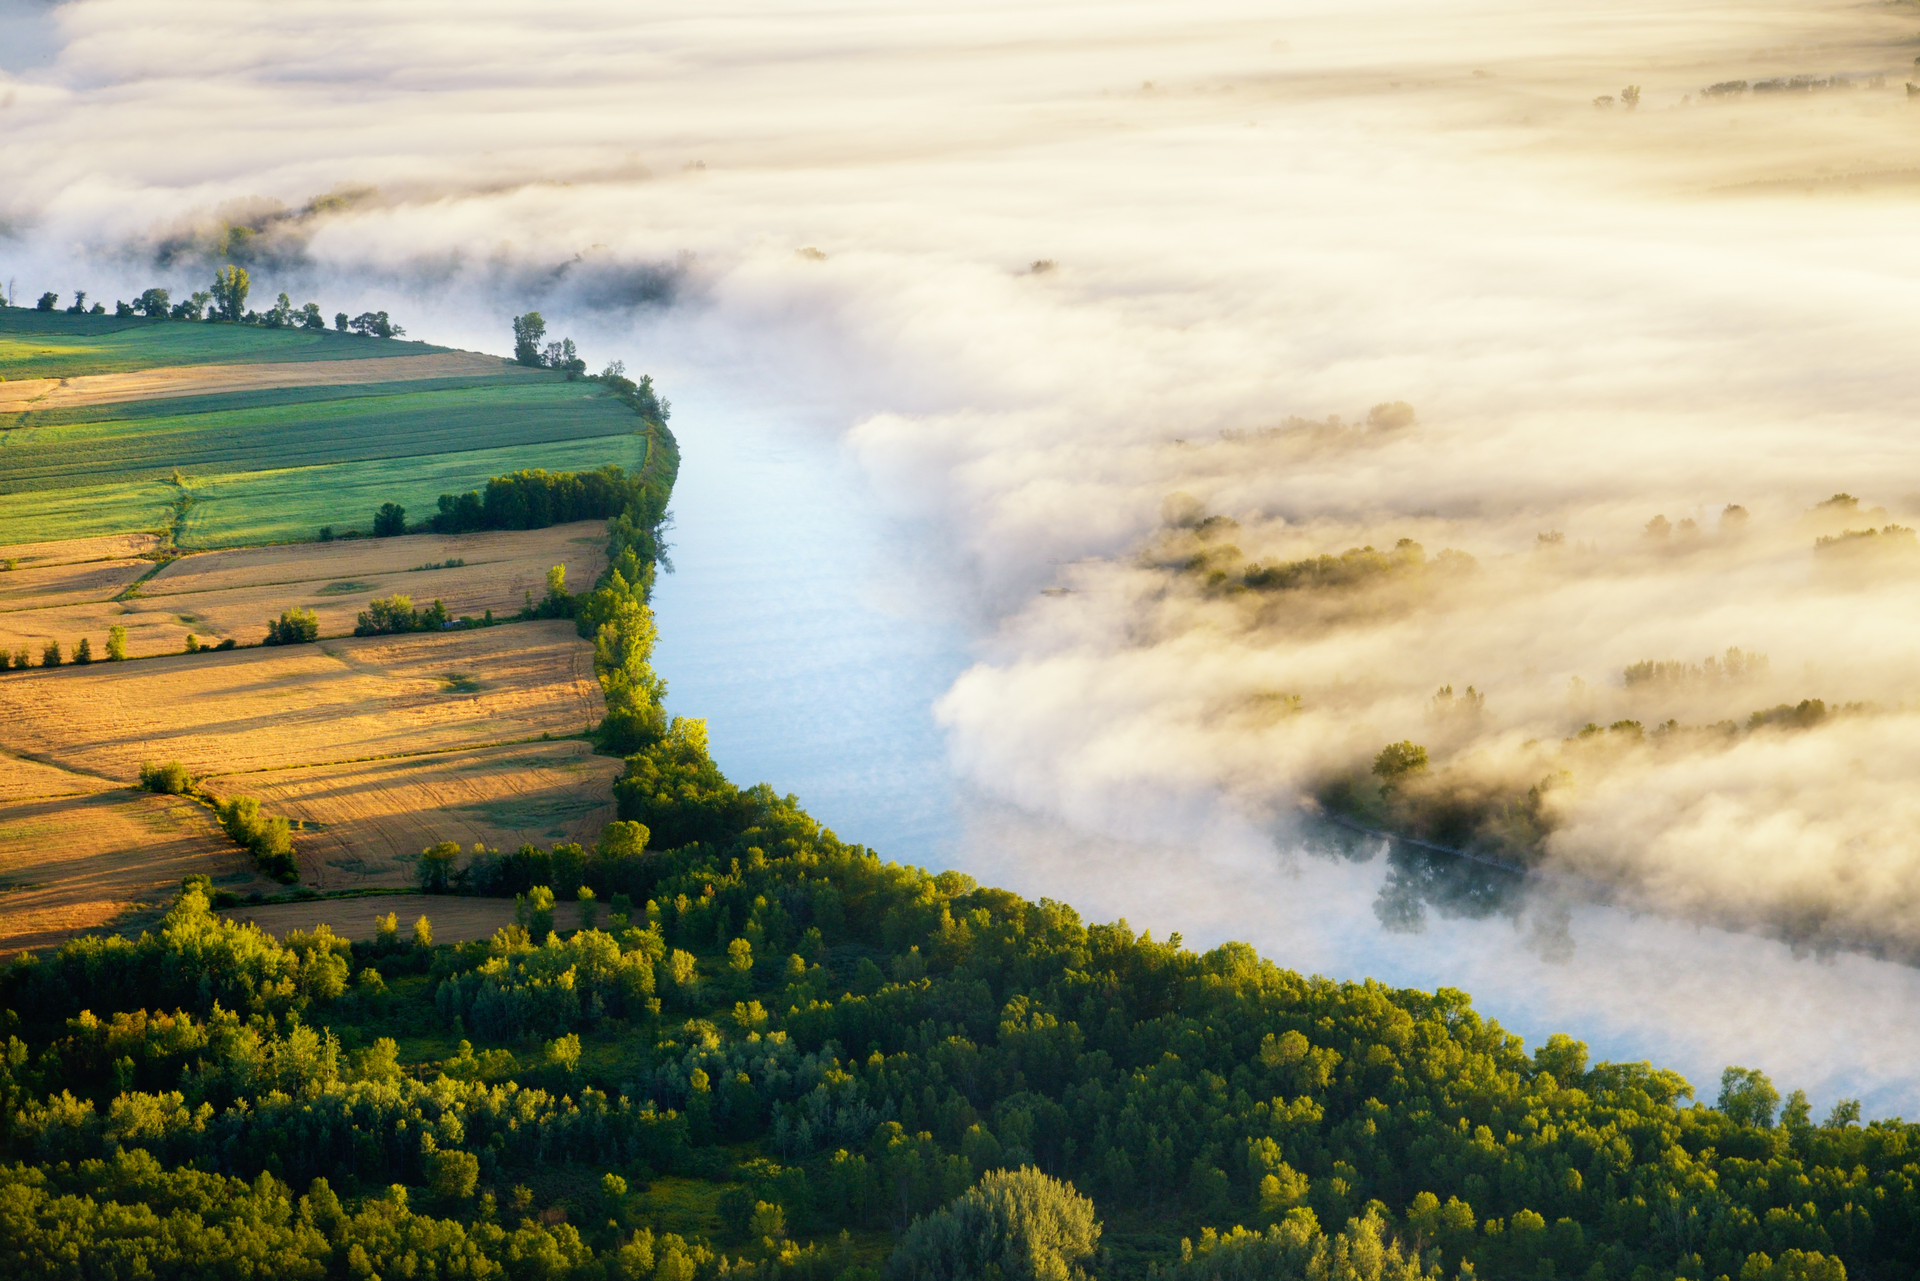 Waking up early has its benefits. You can witness spectacular landscapes such as this one. I captured the fog coming out of the river and being pushed to the side by a light wind. It almost looks surreal. I love being an aerial photographer as I can witness scenes that are not typically seen on the ground. The Richelieu river has offered me many wonderful views that I have captured throughout the years.